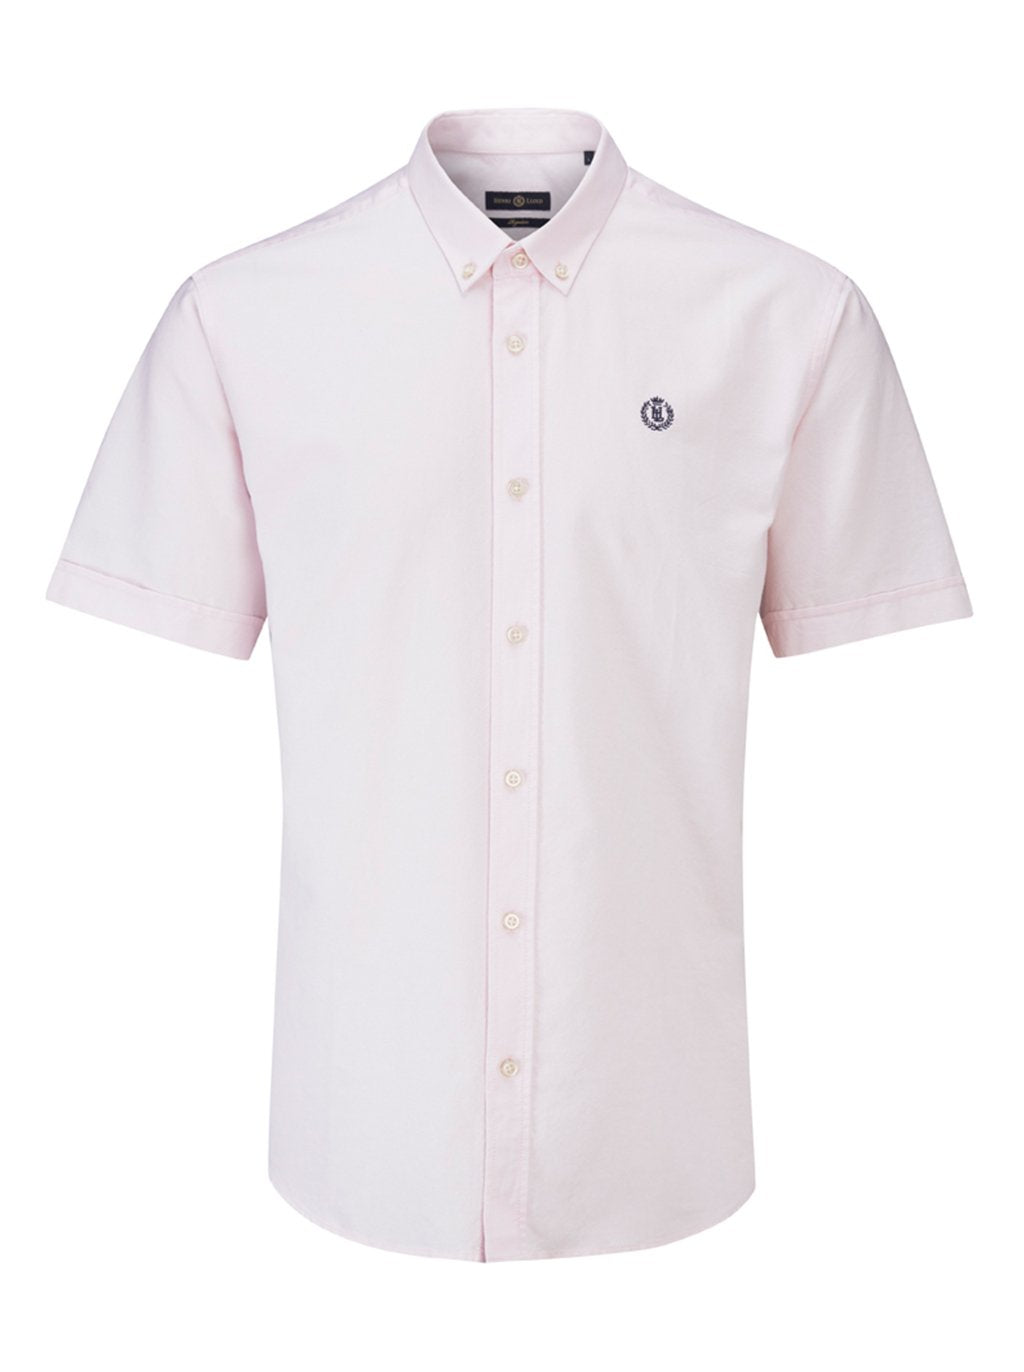 Henri Club Regular Short Sleeve Shirt